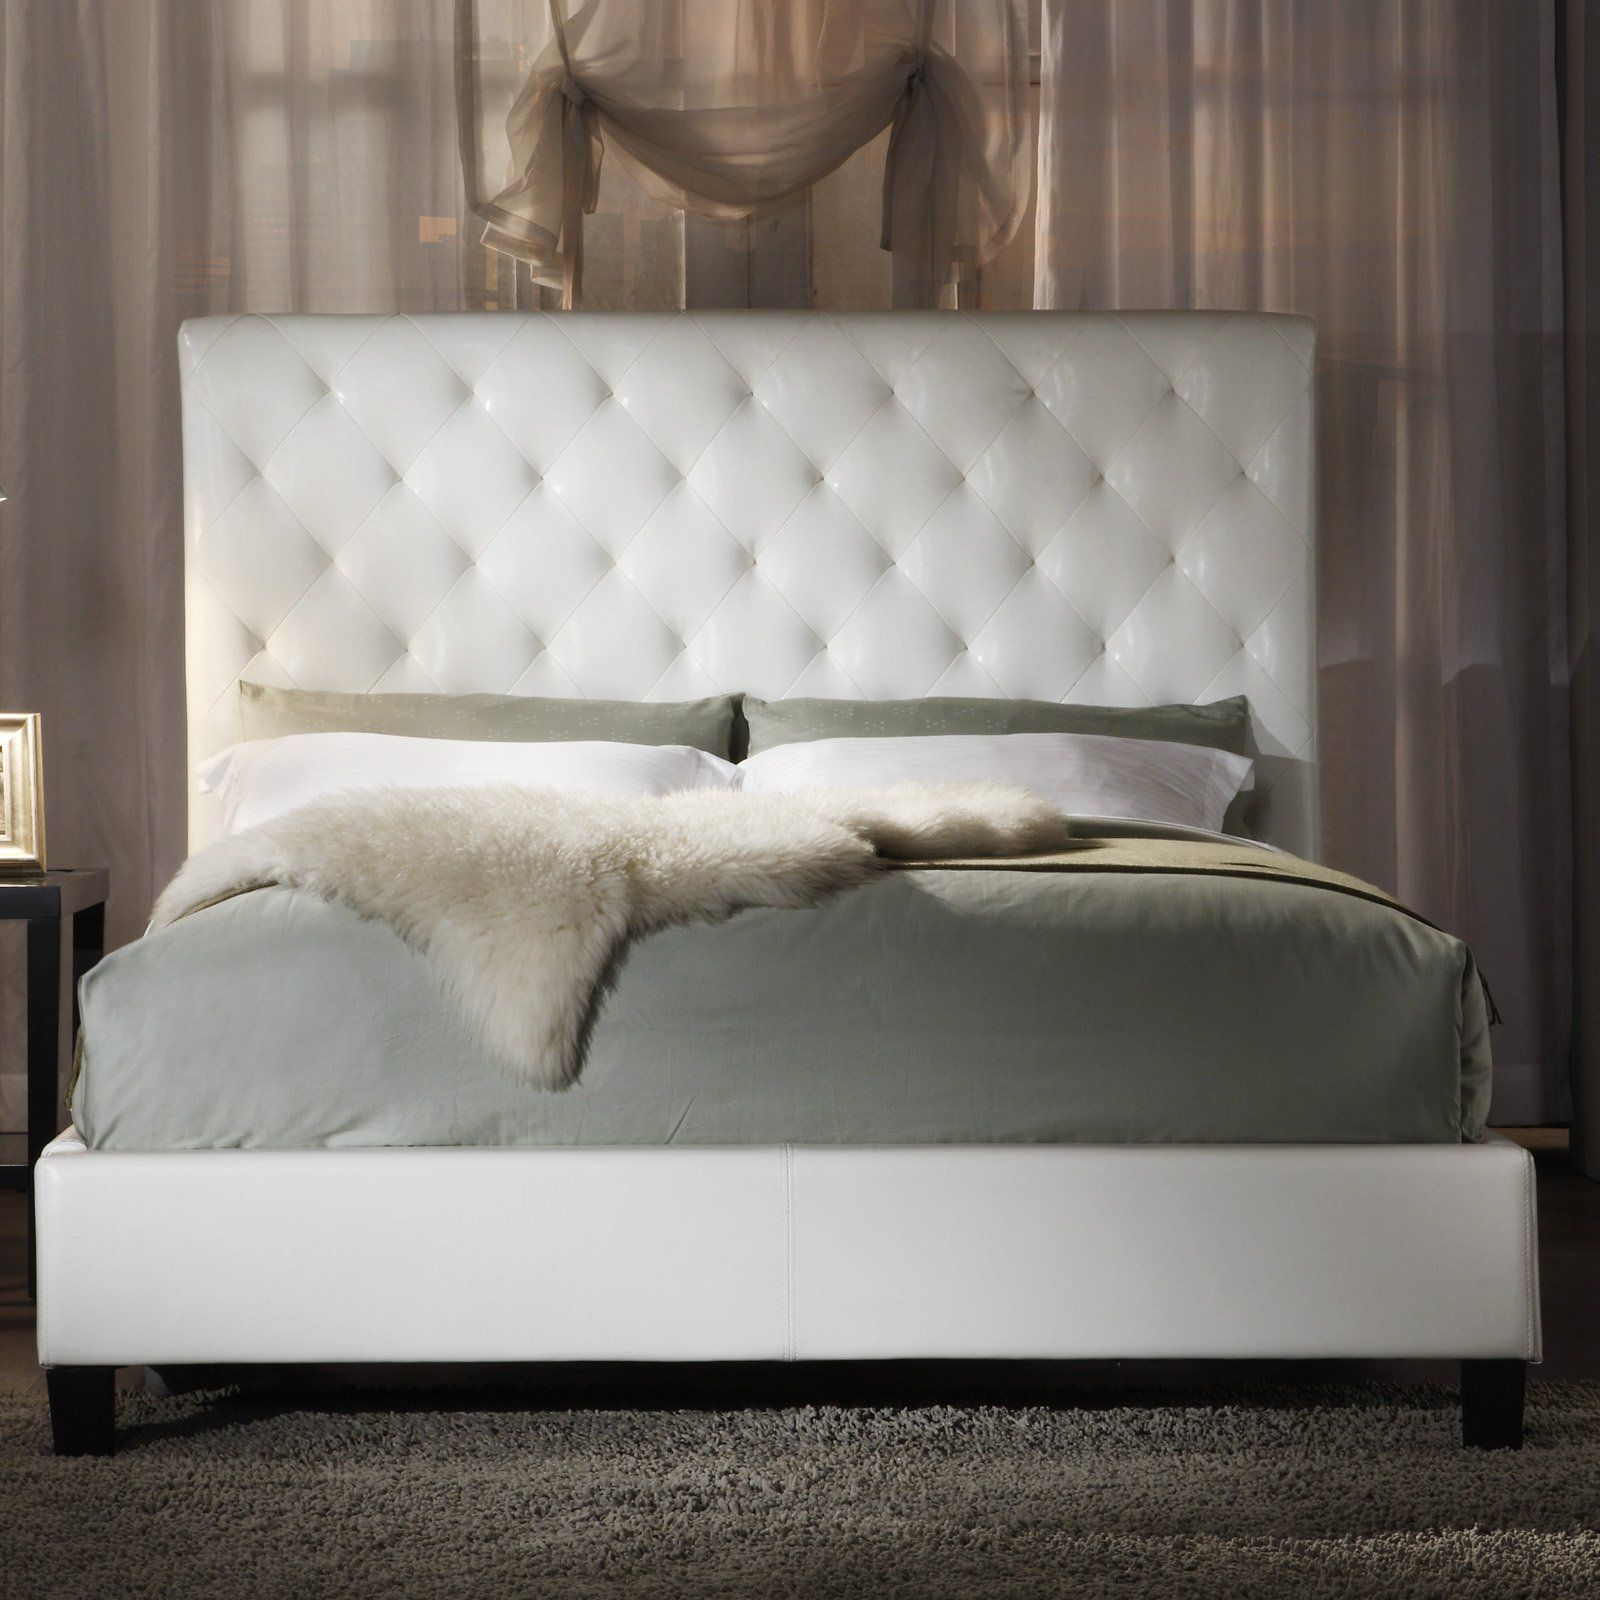 Fenton Tufted Upholstered Low Profile Bed White Vinyl 779 99 Design Wood Frame Upholstery Oversized Headboard Available